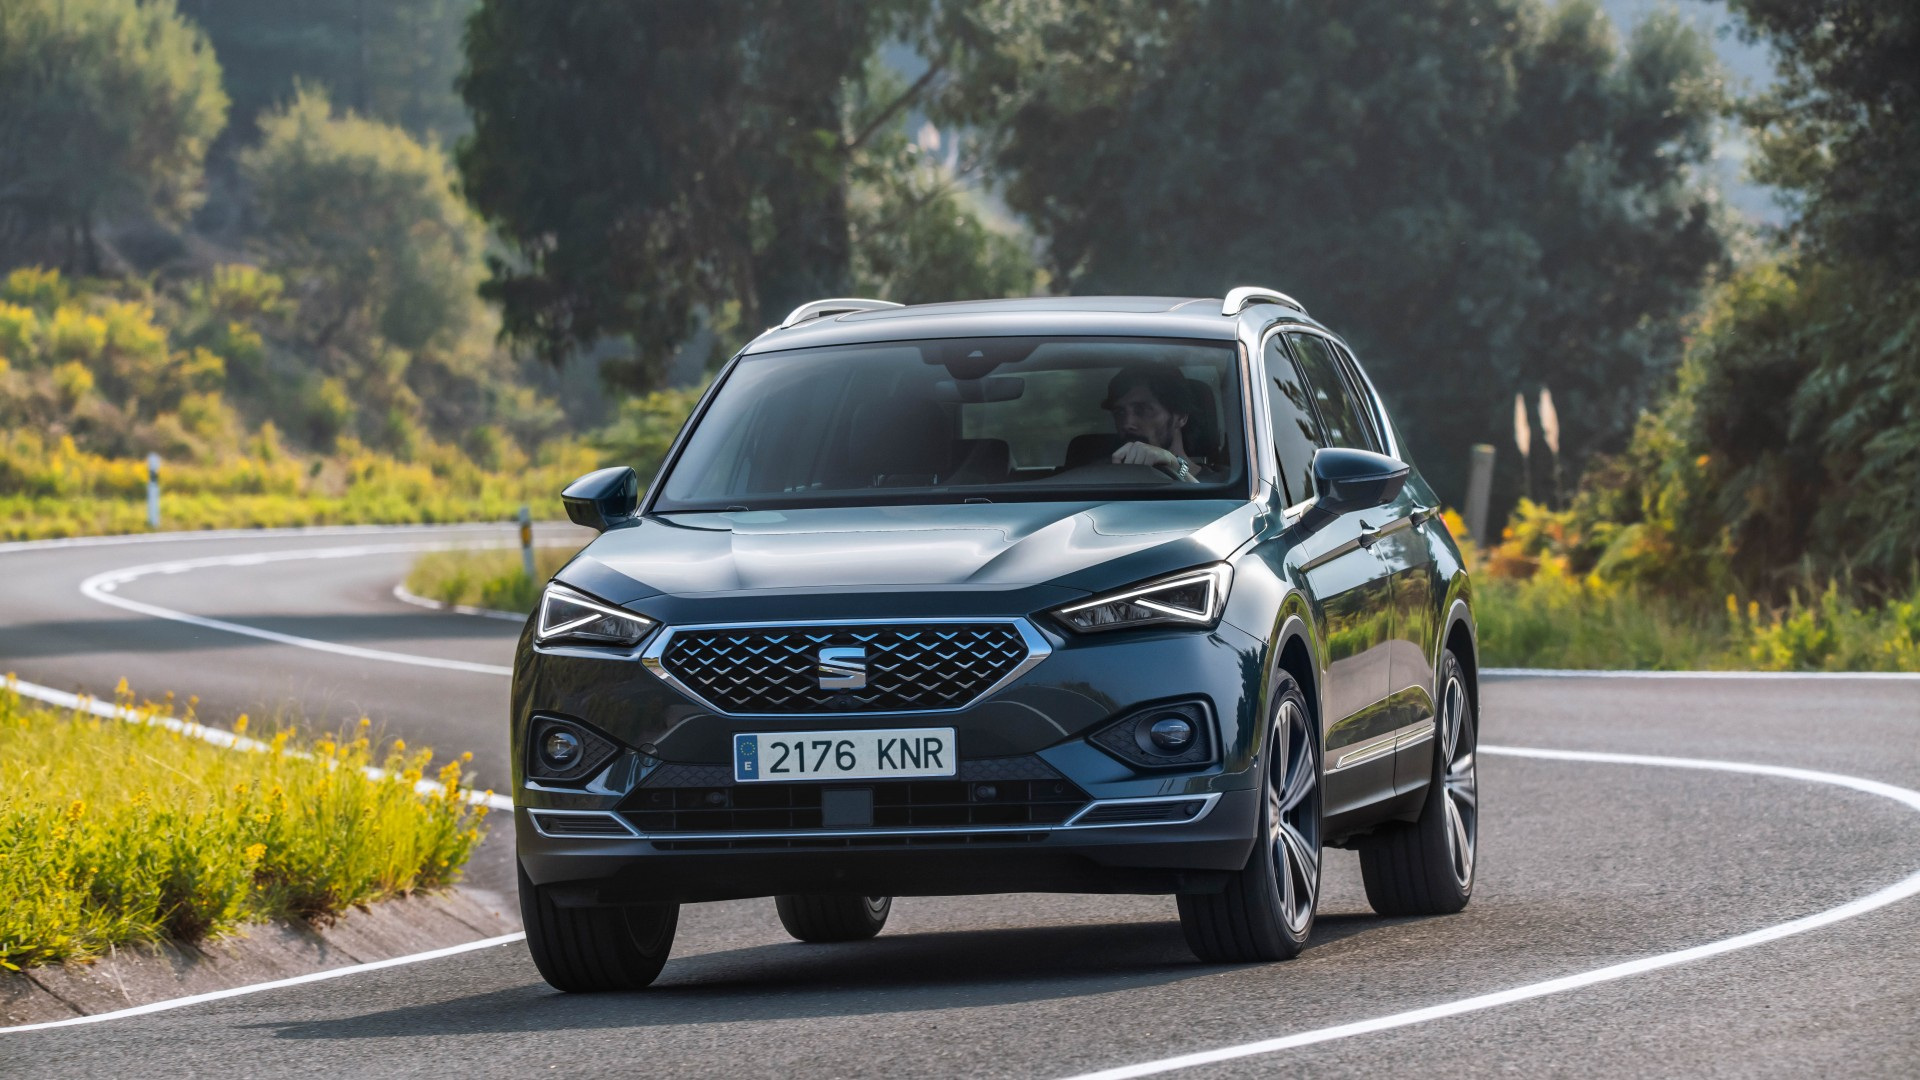 SEAT-Tarraco-achieves-Euro-NCAPs-highest-safety-rating_01_HQ